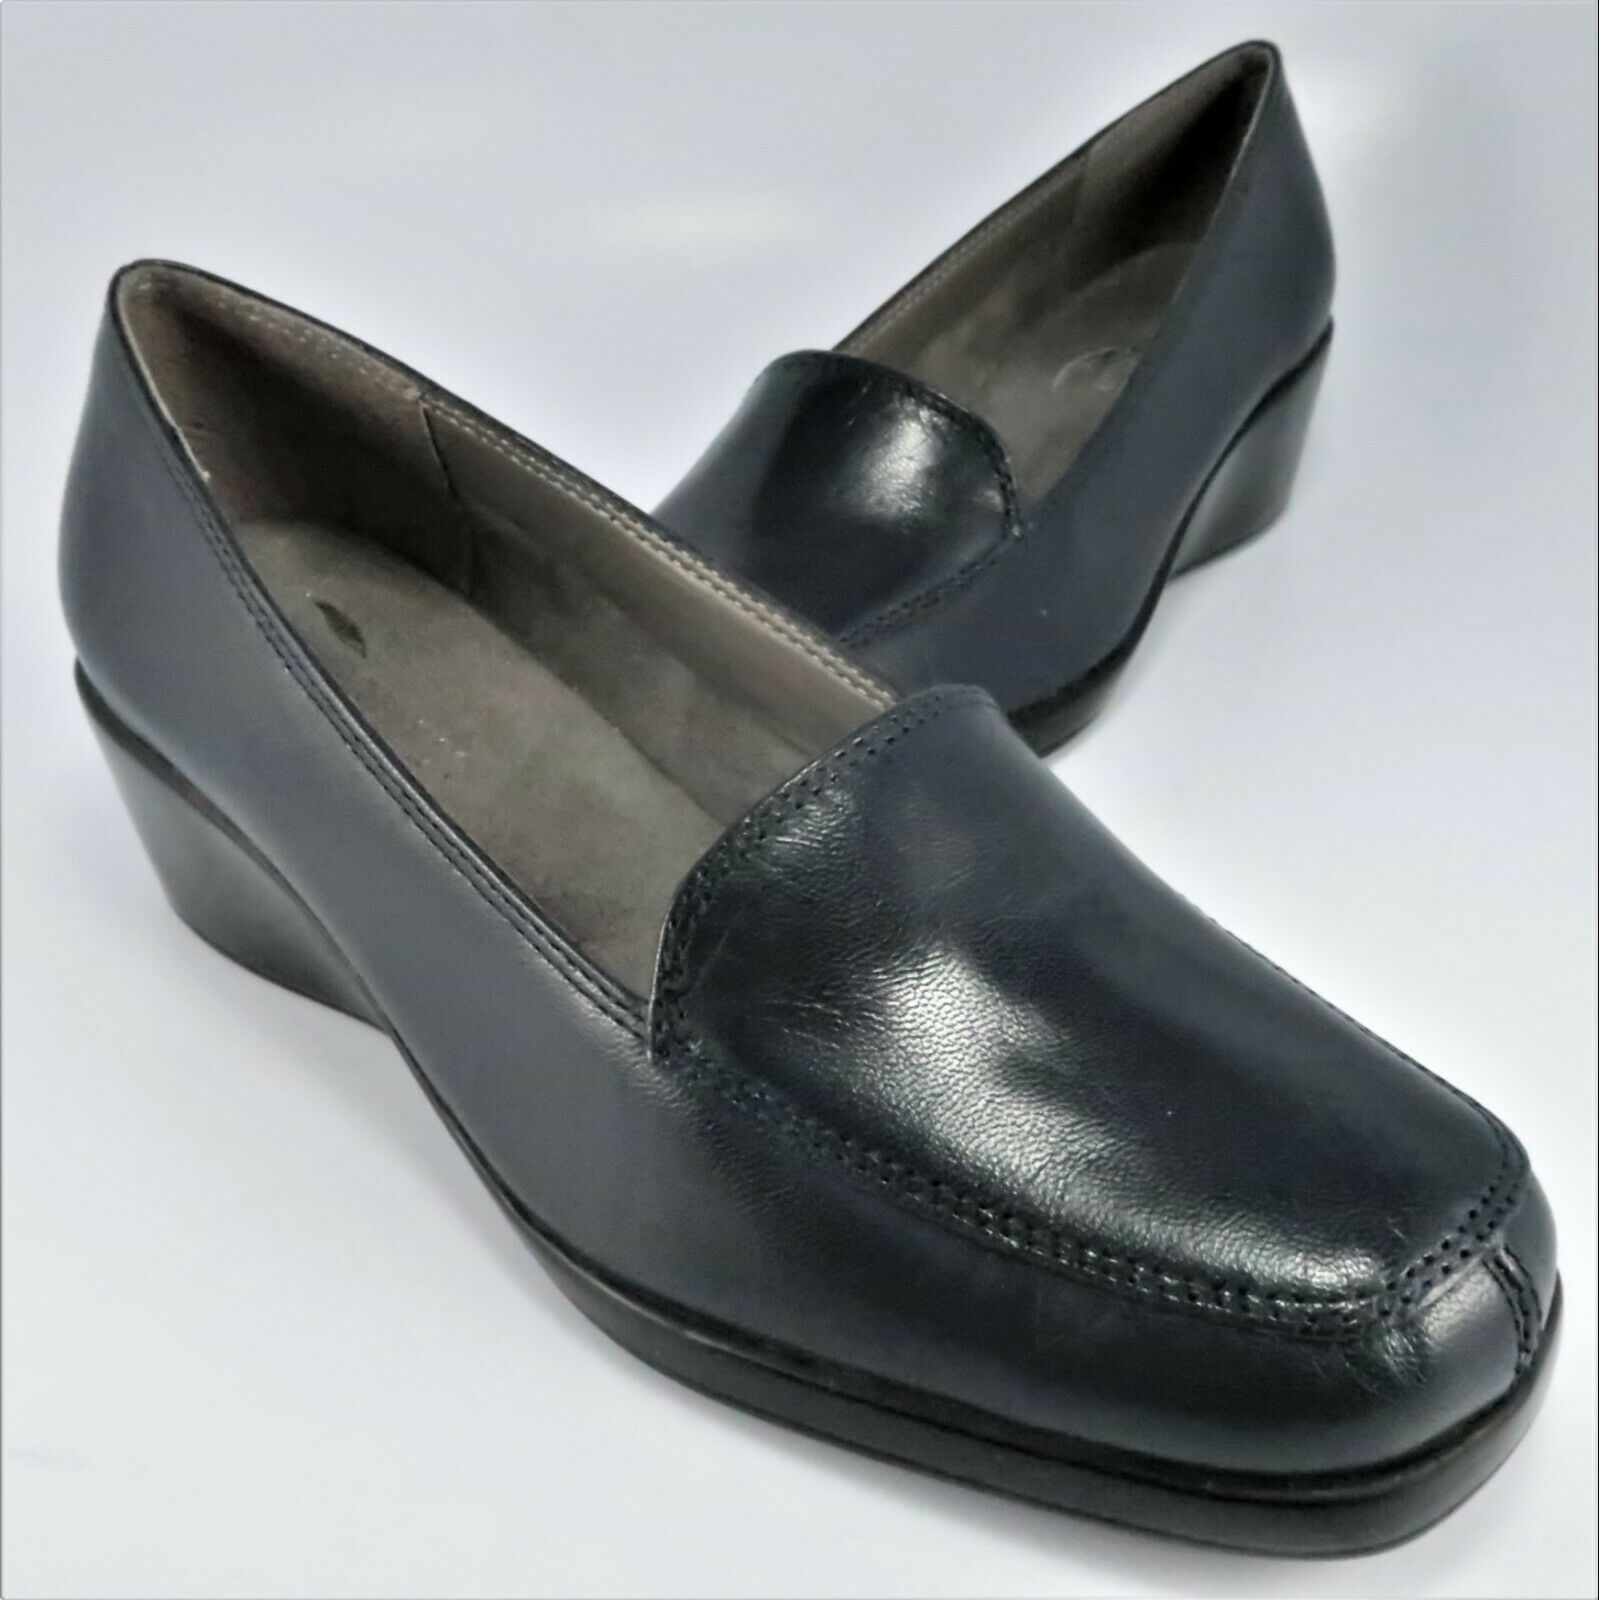 NEW - Aerosoles FINAL EXAM Wedge Loafers Womens Size 6.5M Navy Leather Slip-Ons